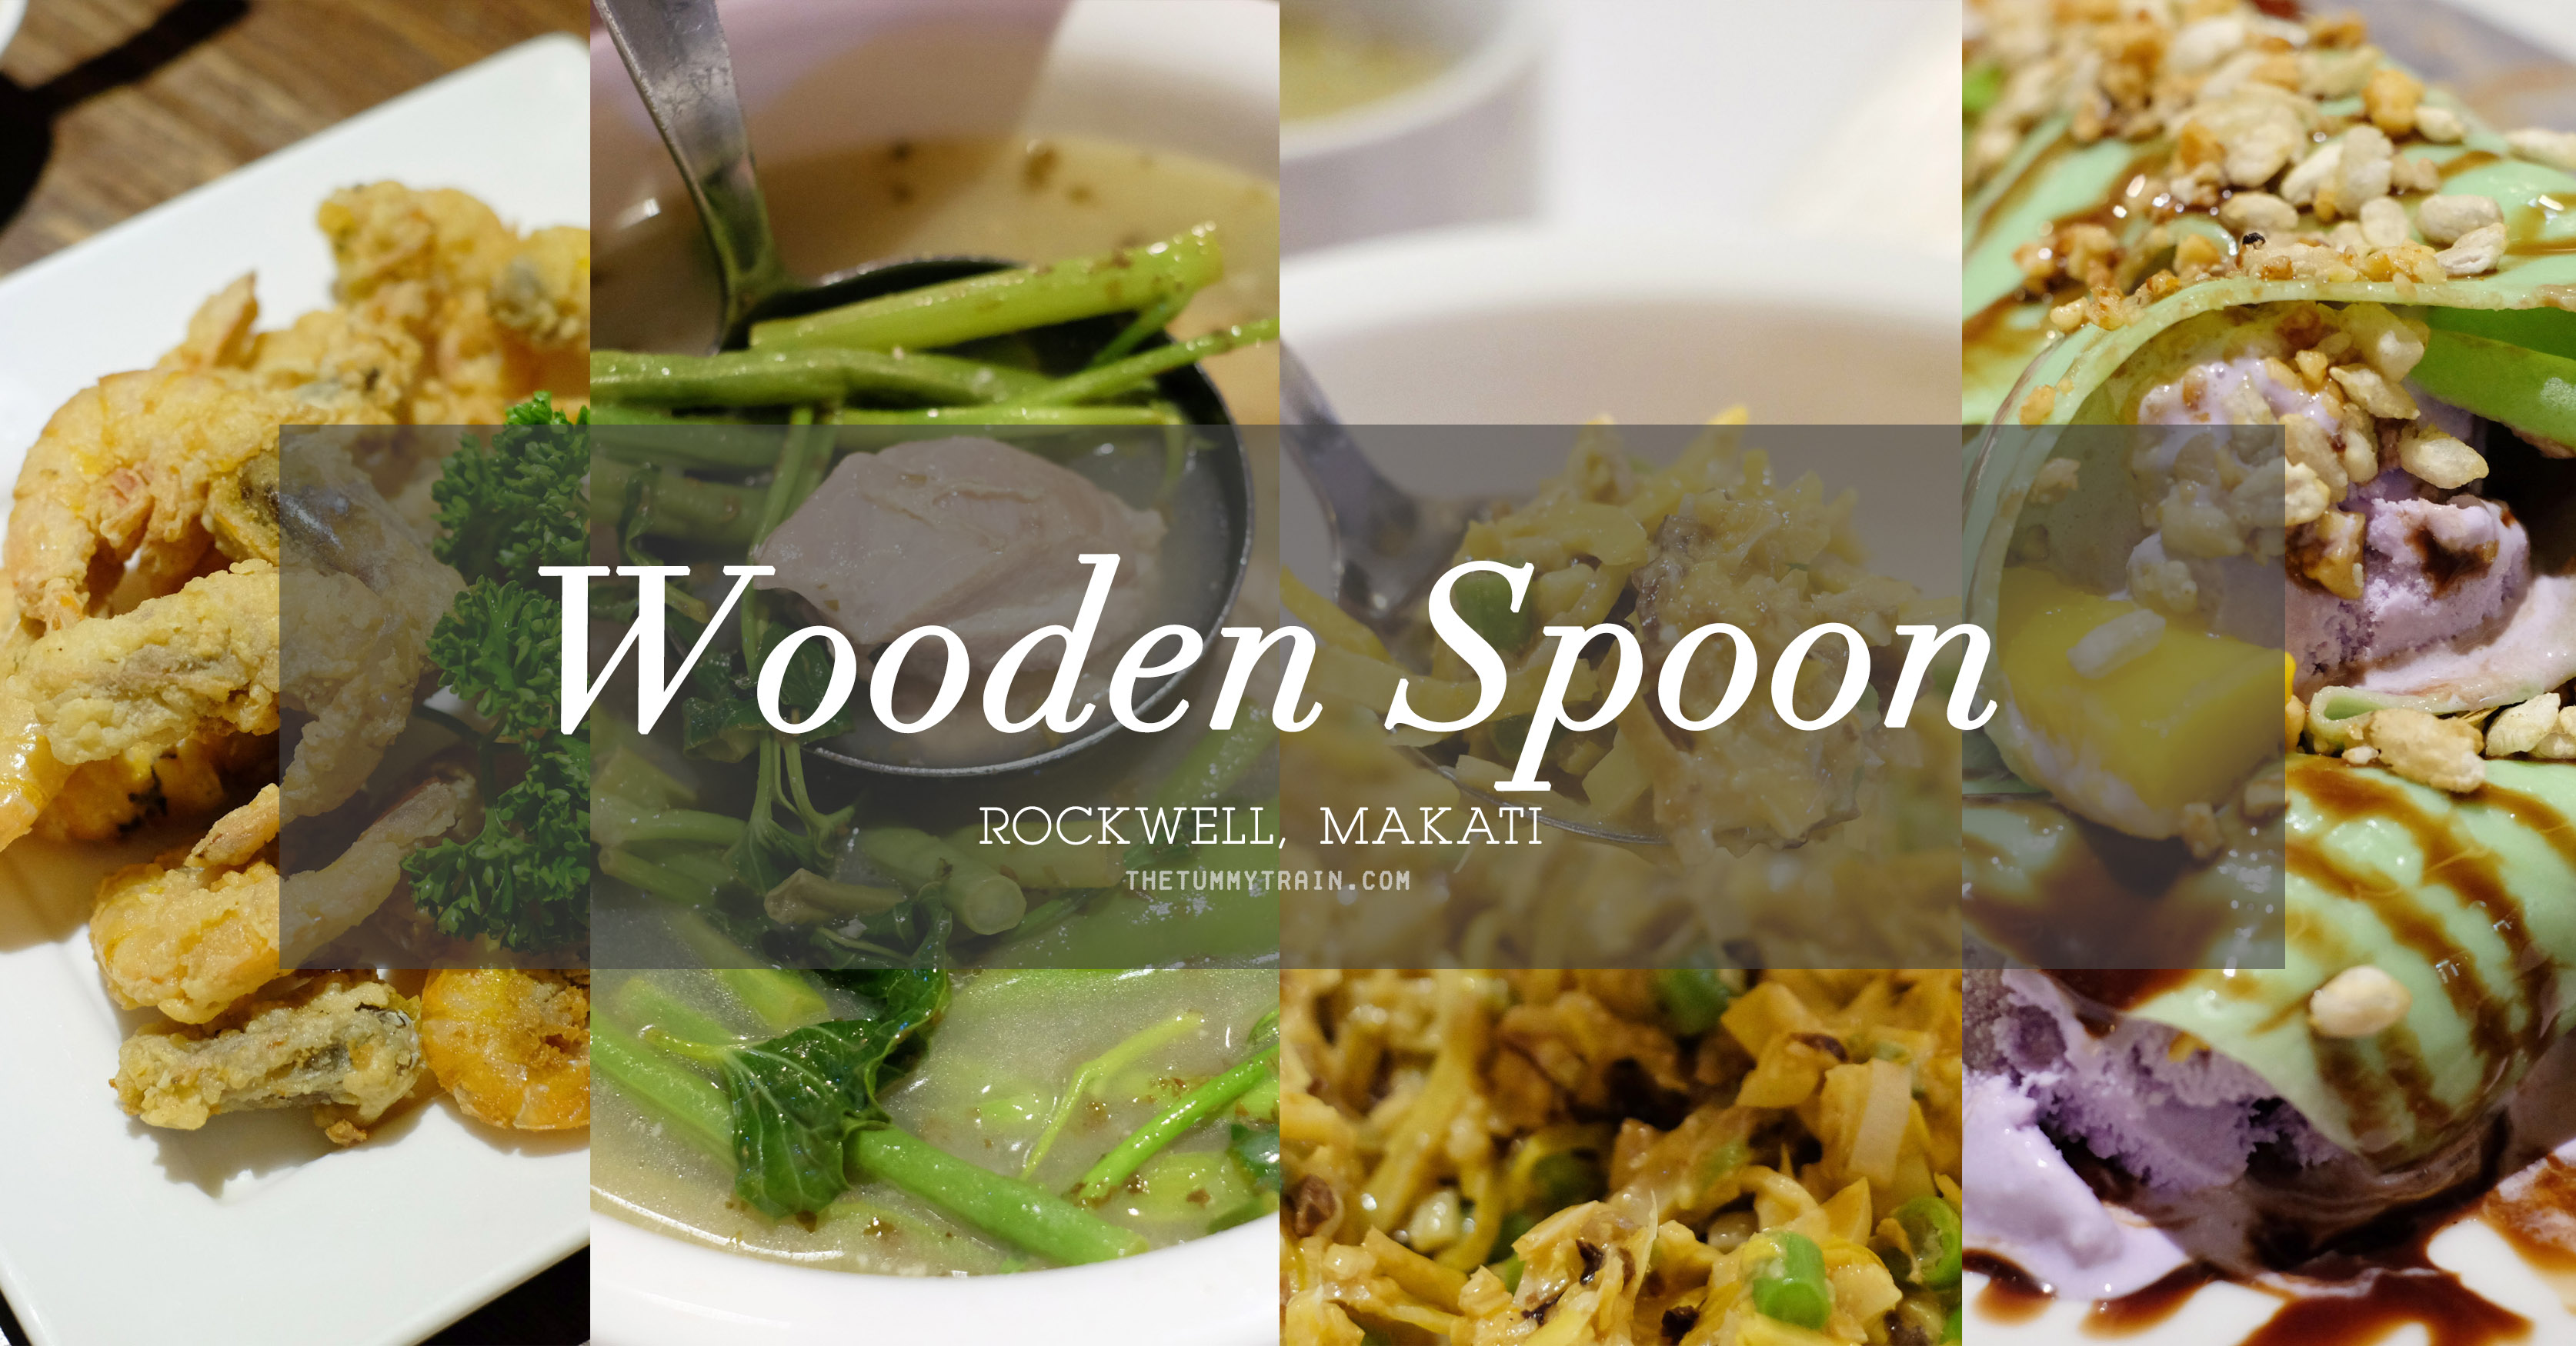 Wooden Spoon COVER - Have an affordable home-cooked Pinoy meal at Wooden Spoon